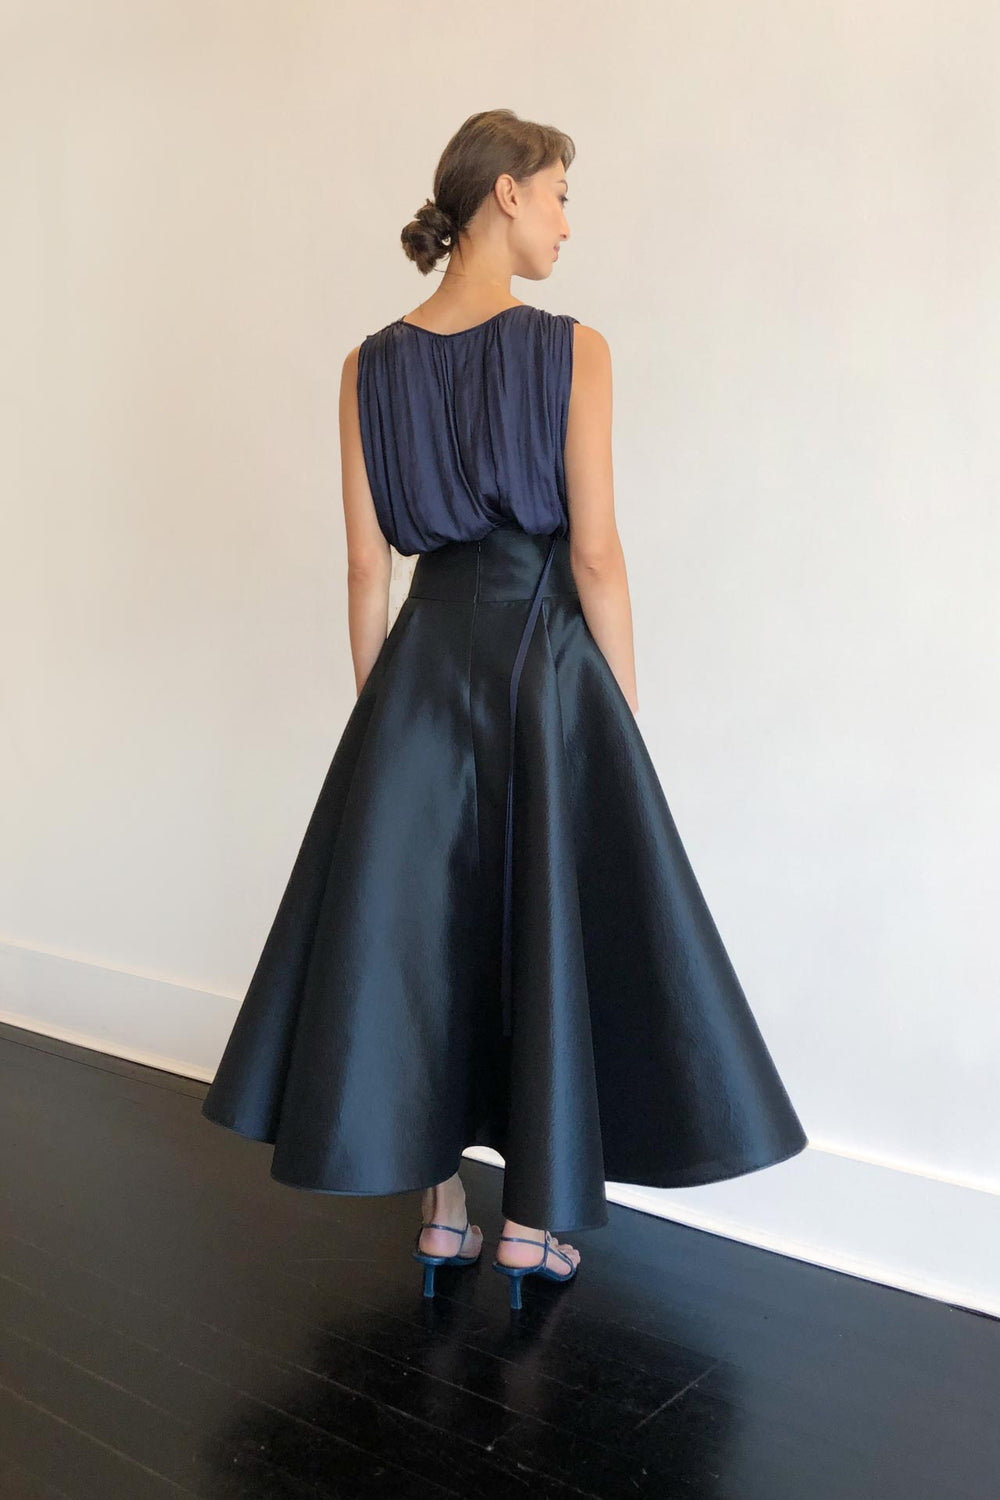 Fashion Designer CARL KAPP collection | Ophelia Silk Navy Formal Skirt | Sydney Australia